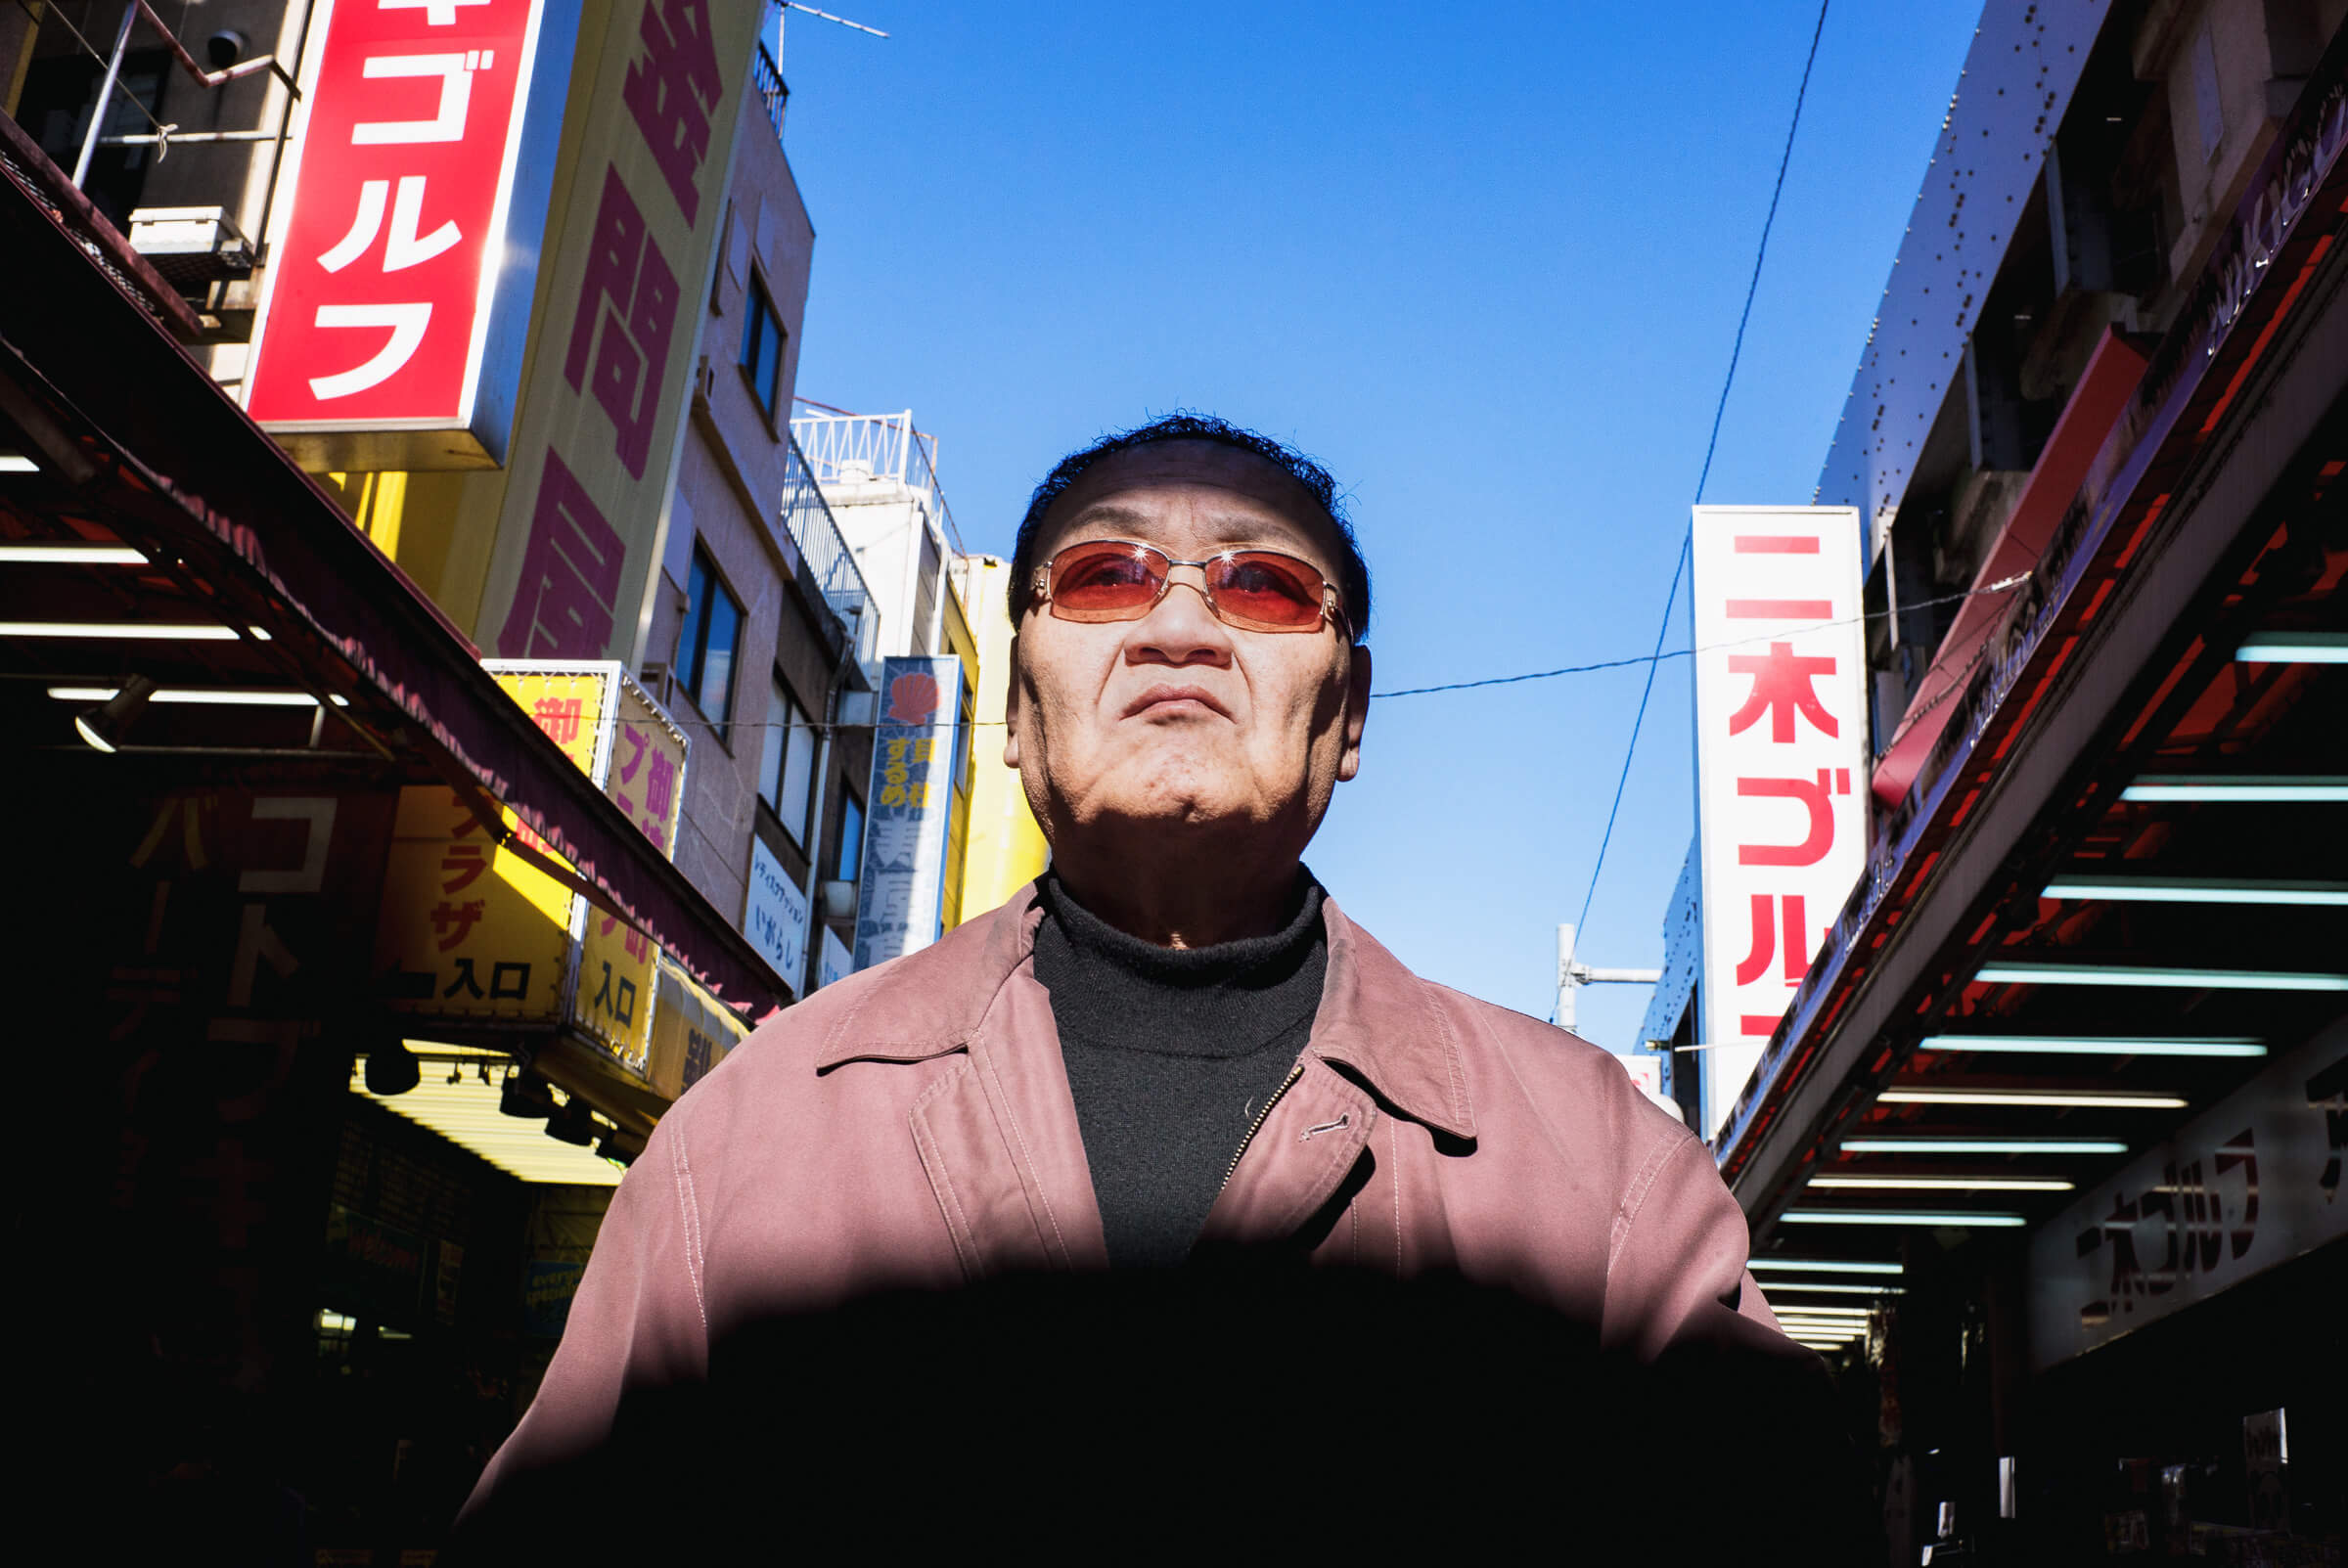 tokyo-sun-signs-and-tinted-glasses